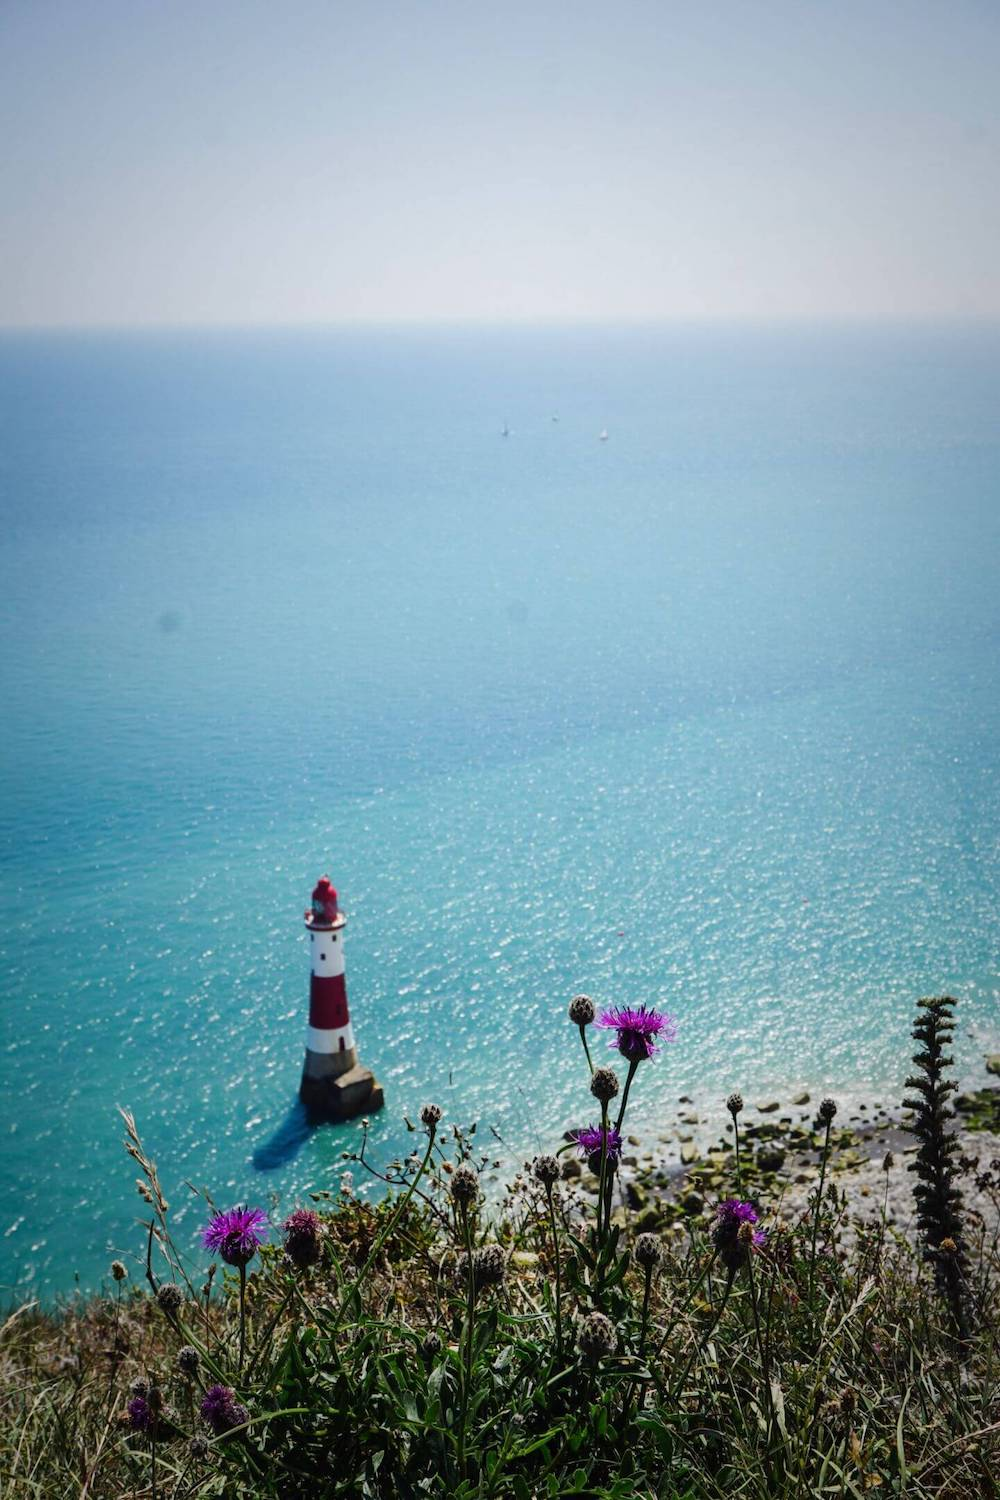 Beachy Head Lighthouse, England